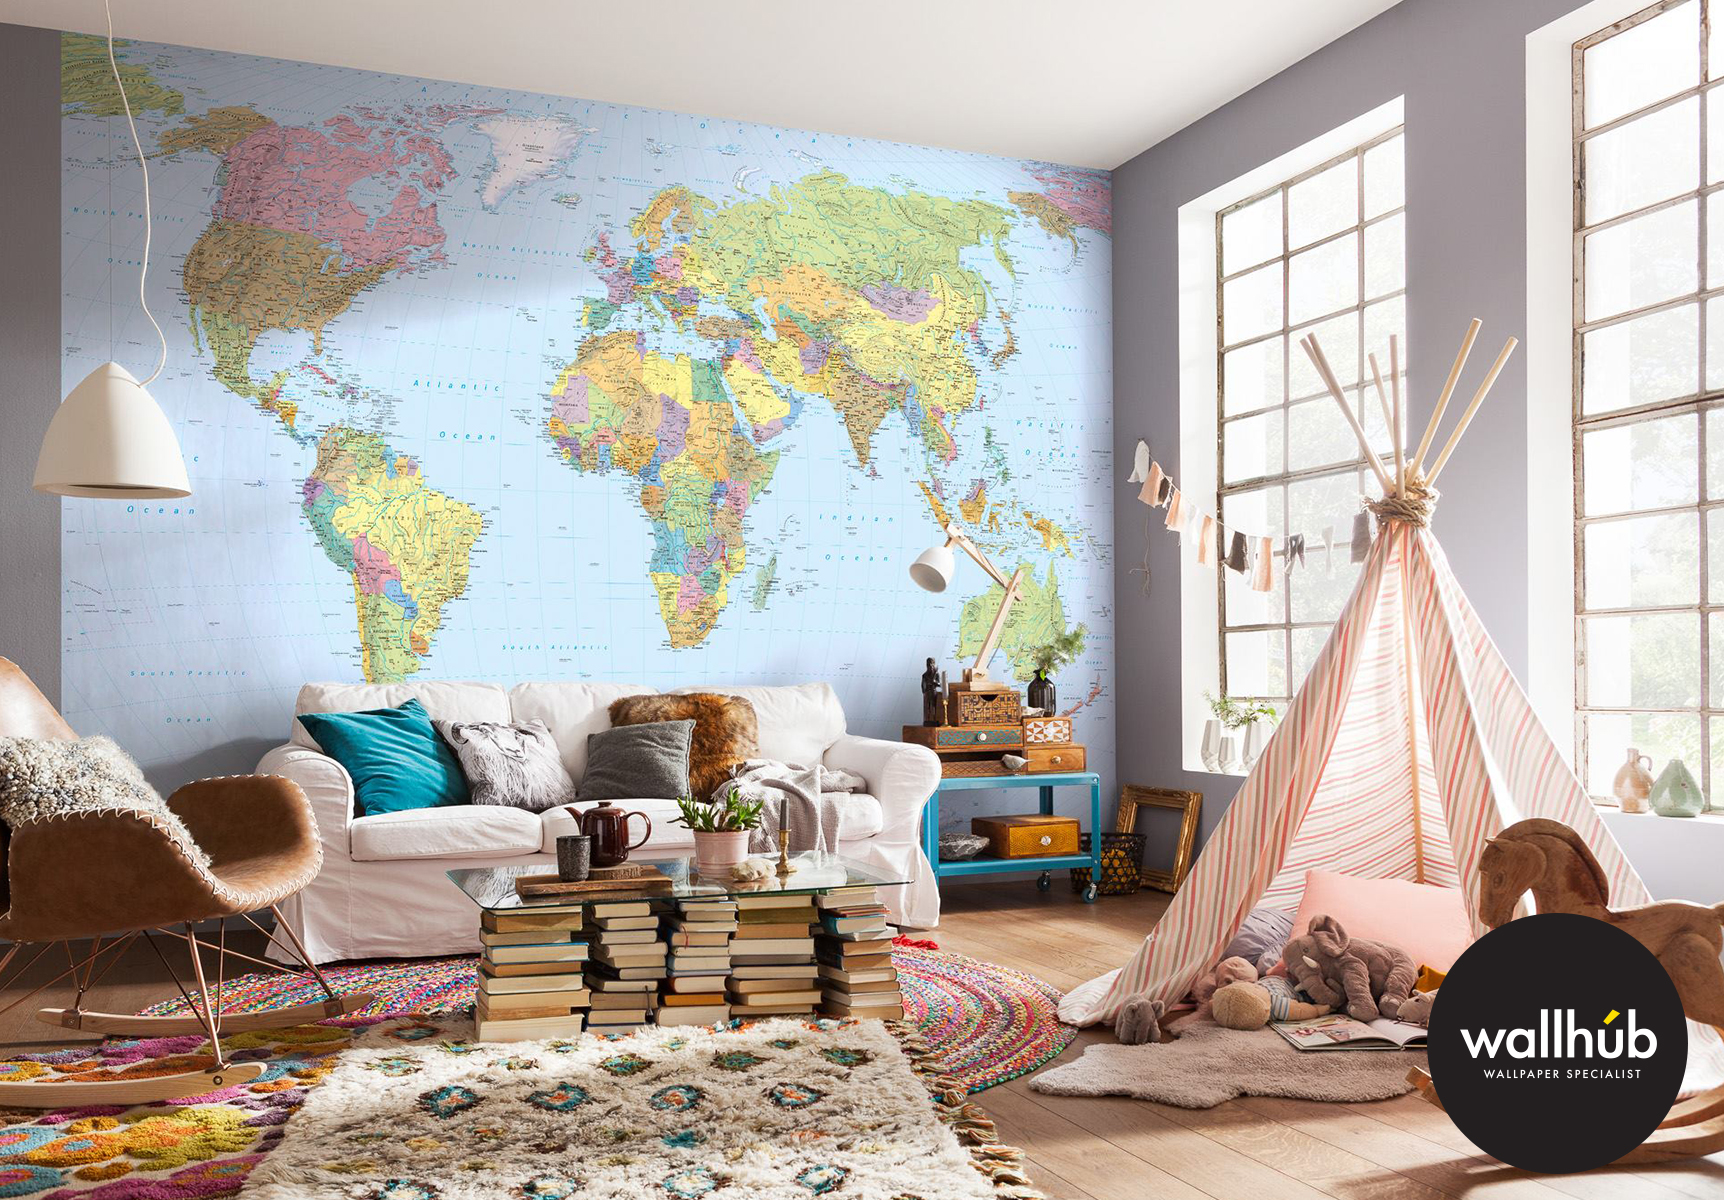 World map mural wallhub mural wallpaper world map 00 7 gumiabroncs Gallery